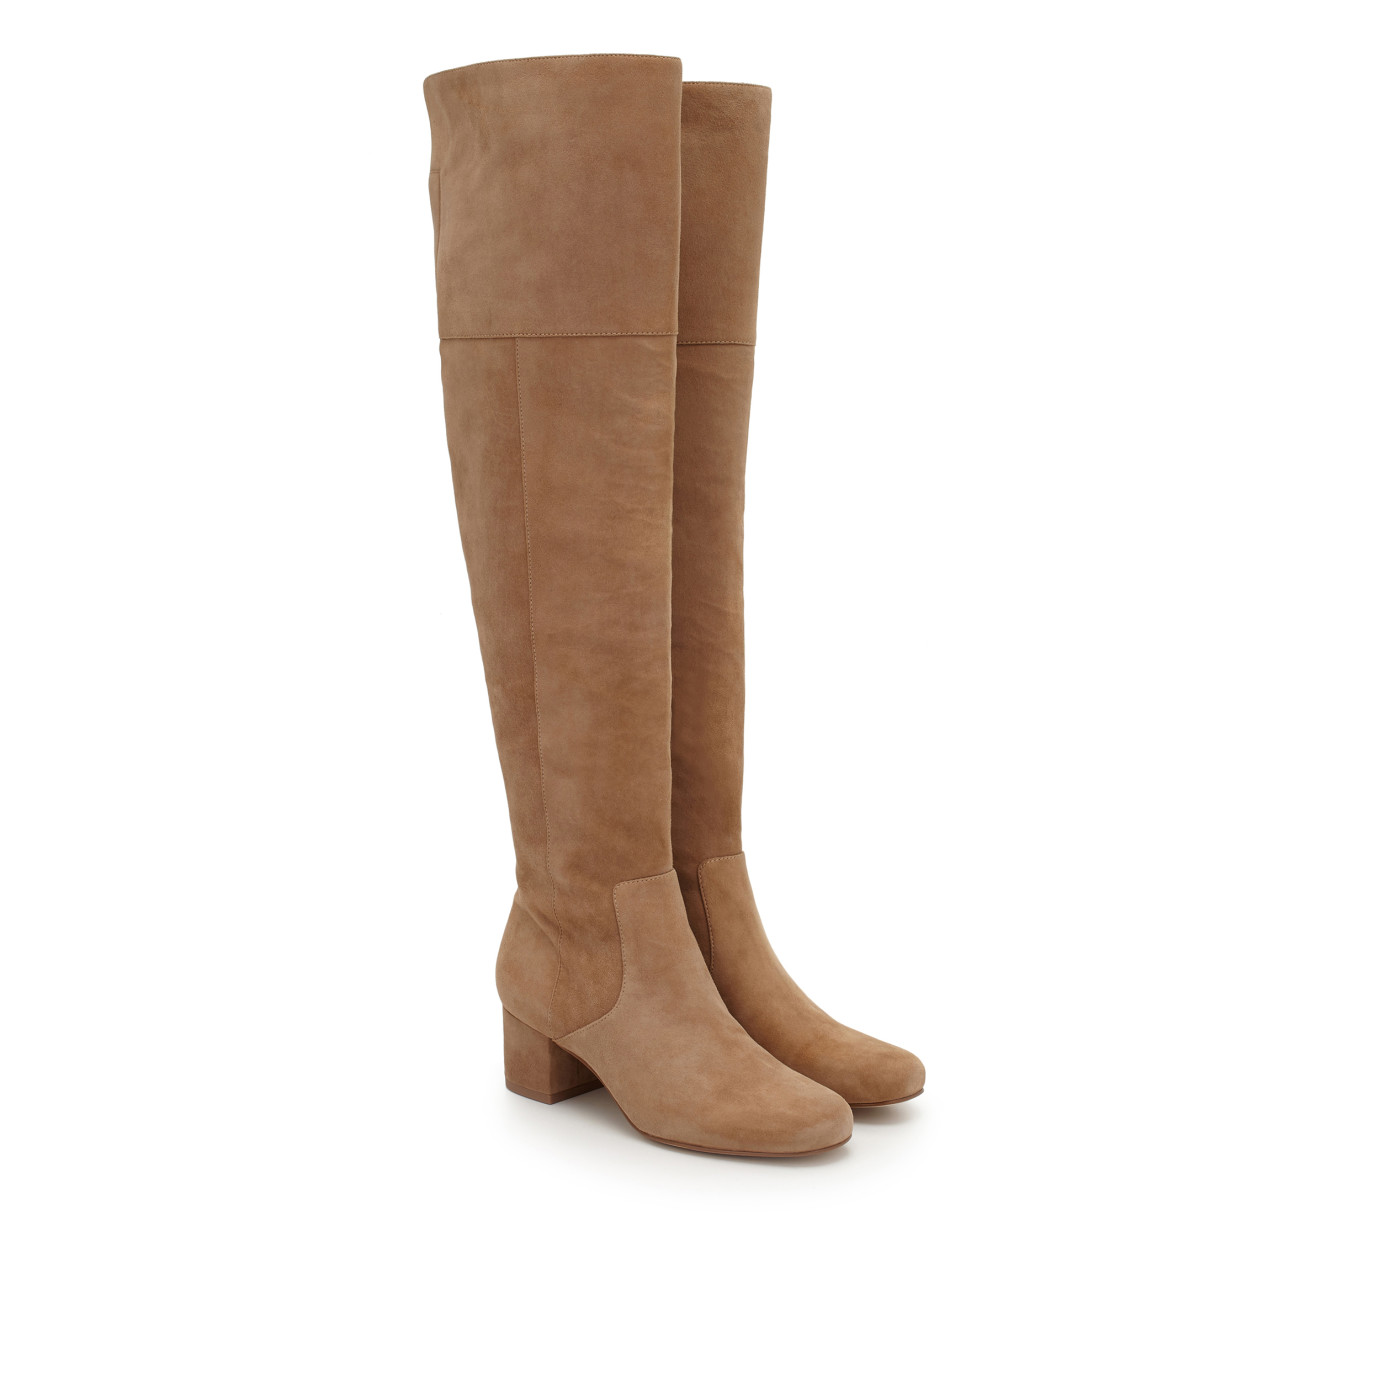 Elina Over-the-Knee Boot - Boots | SamEdelman.com